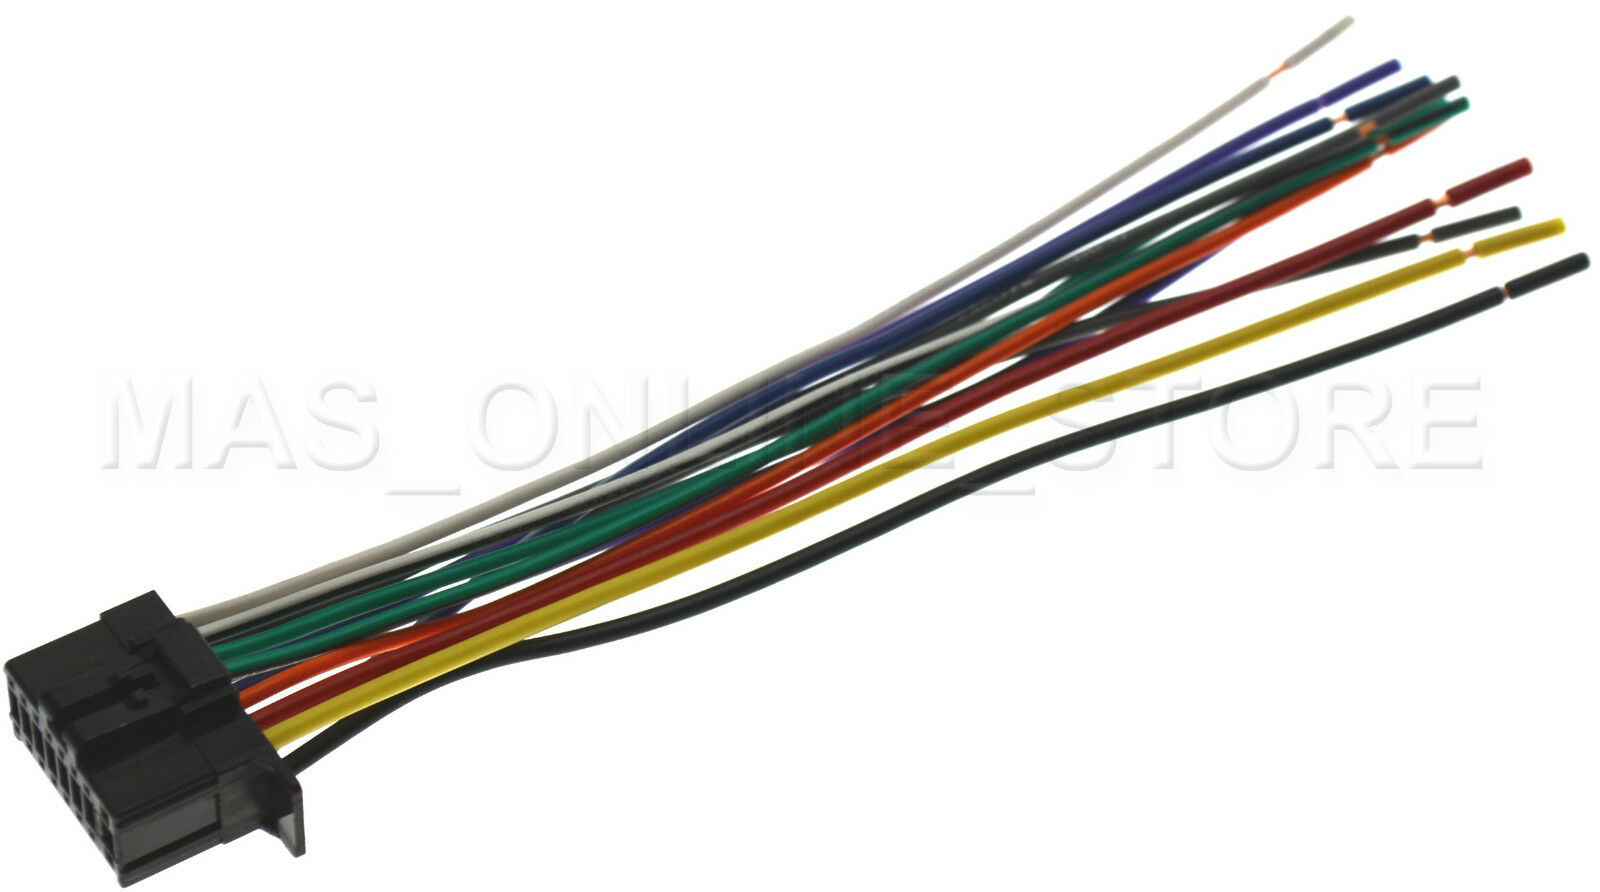 s l1600 wire harness for pioneer deh x6800bt dehx6800bt ebay pioneer deh-x6800bt wiring harness at edmiracle.co